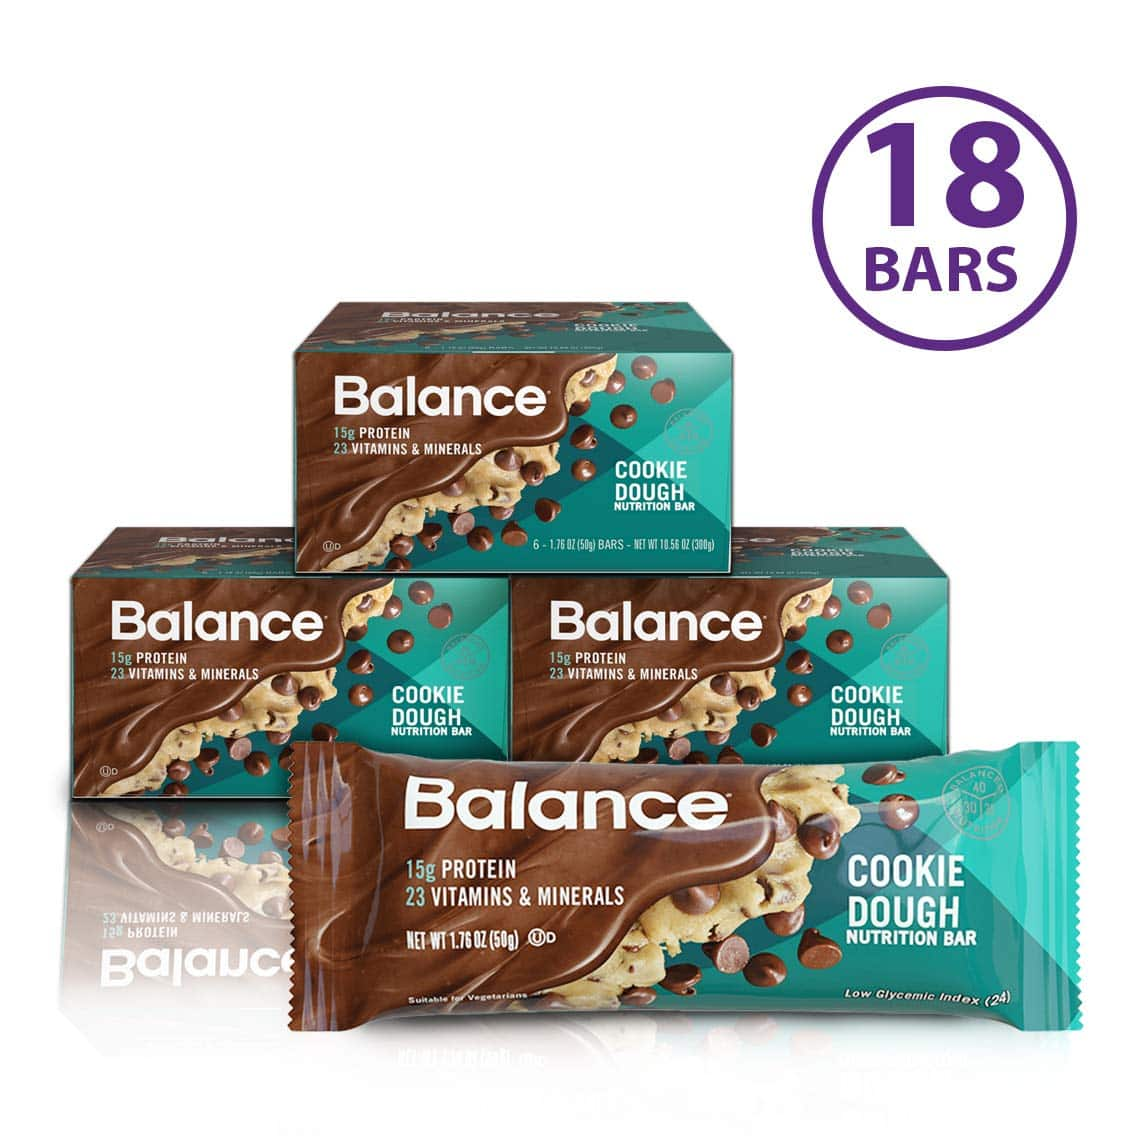 18 count - Balance Bar, Healthy Protein Snacks, Cookie Dough - $12.74 AC at Amazon w/ subscribe and save